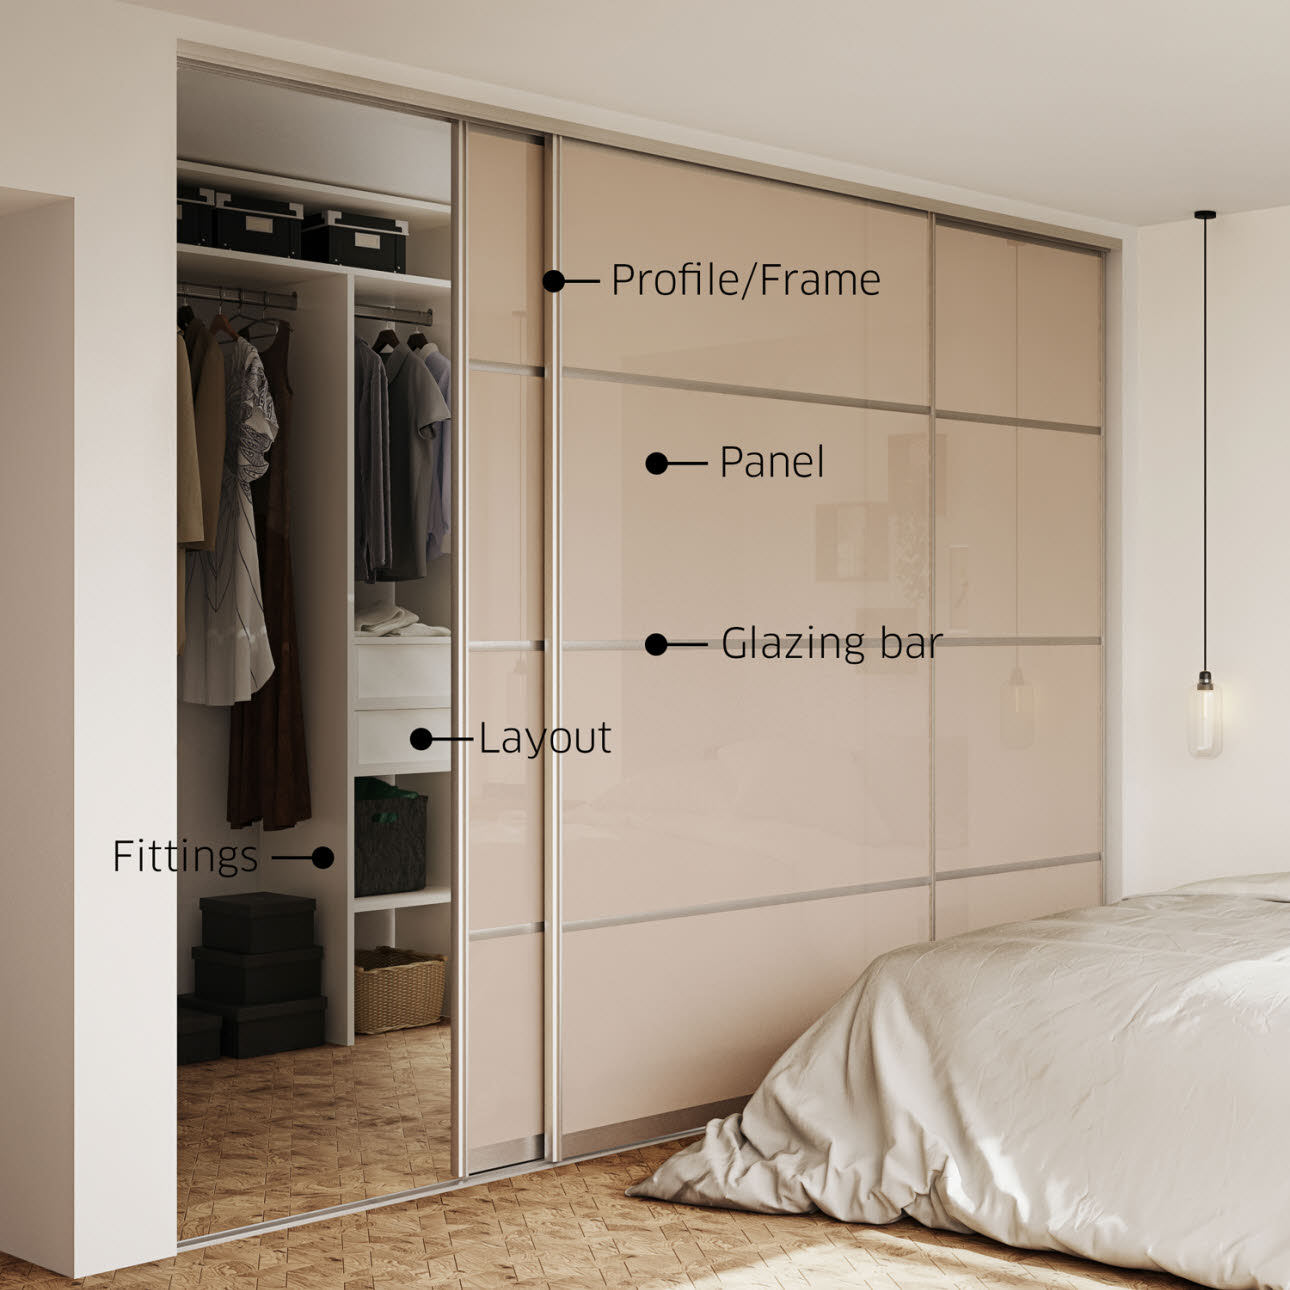 Design your sliding door waredrobe | HTH